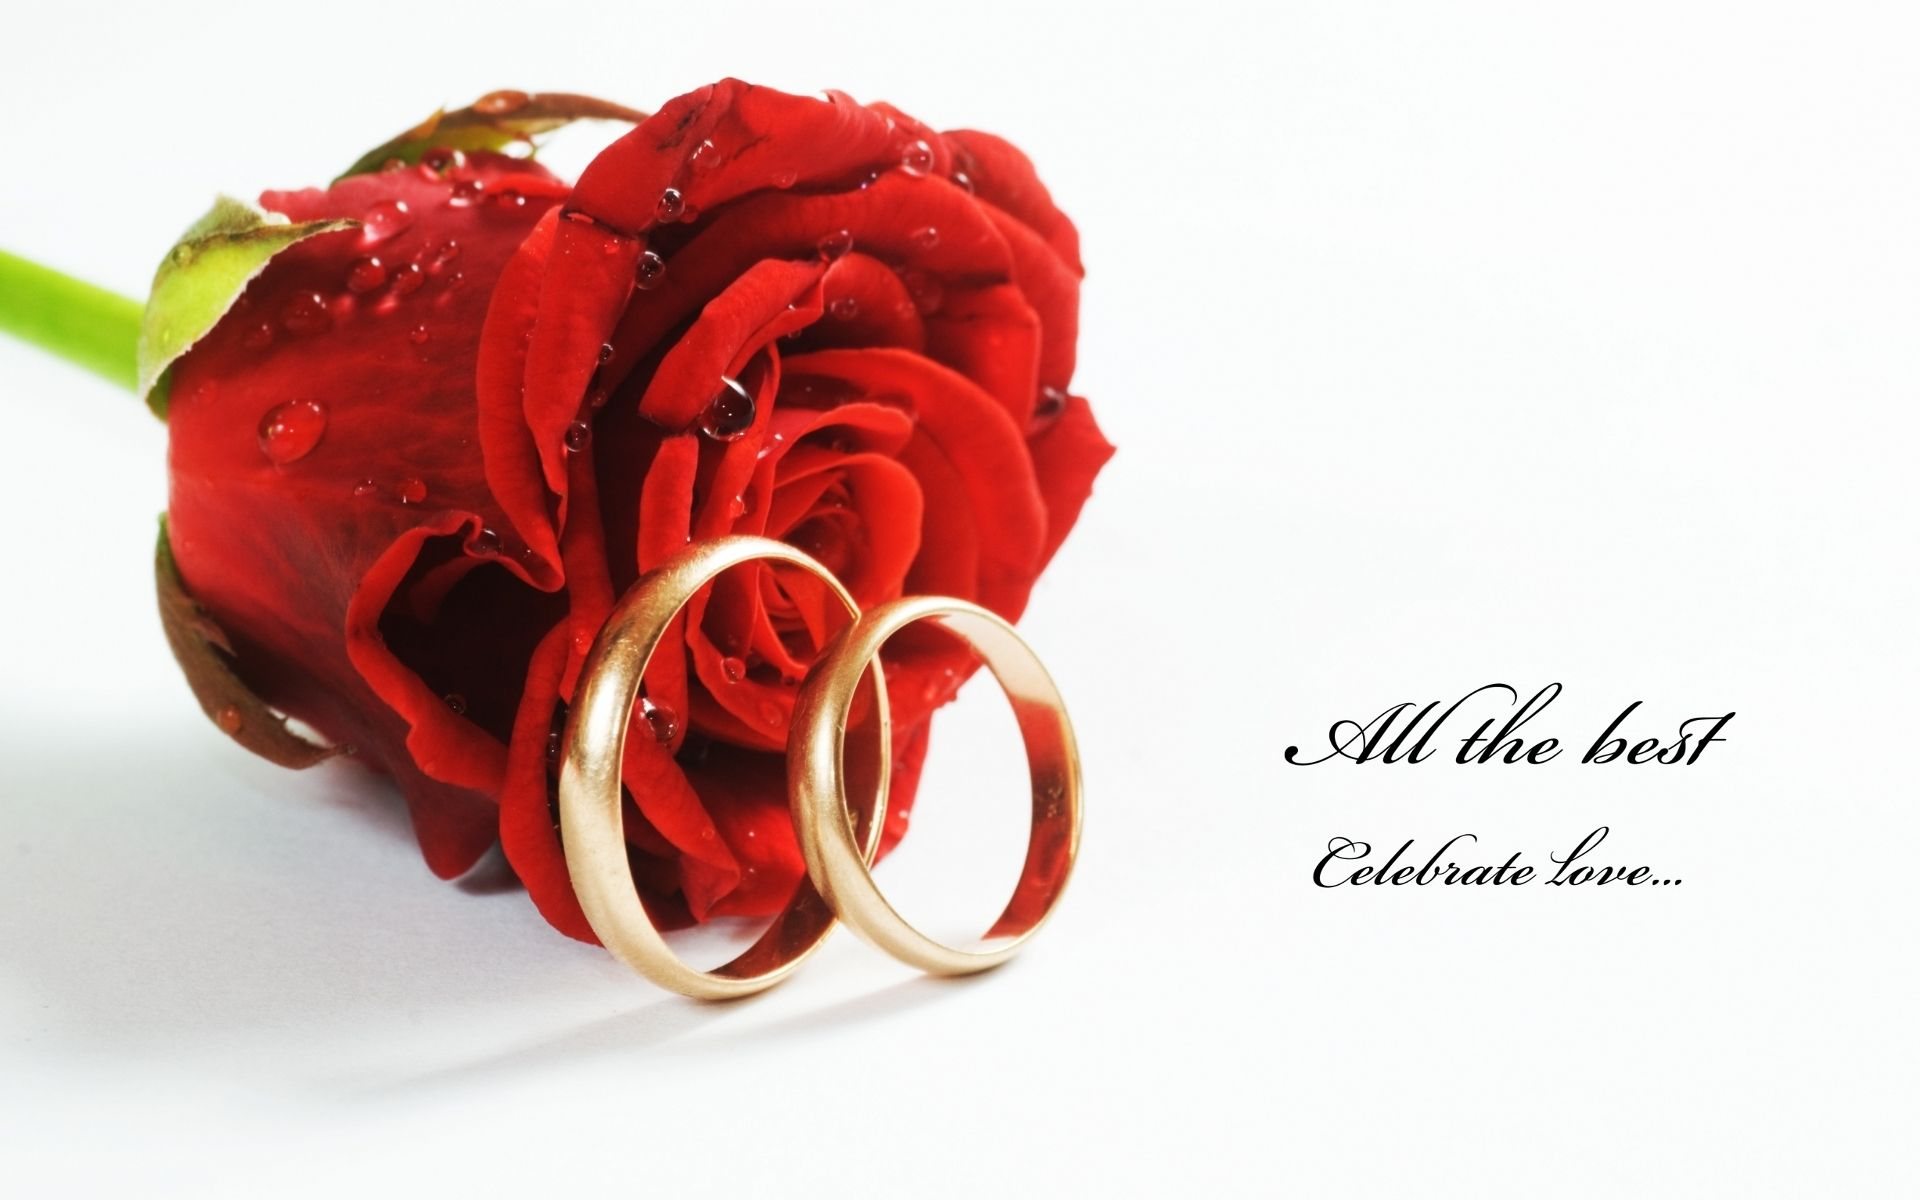 Hd wallpaper red rose - Red Roses Hd Wallpapers Share Your Moments With Ourdunya